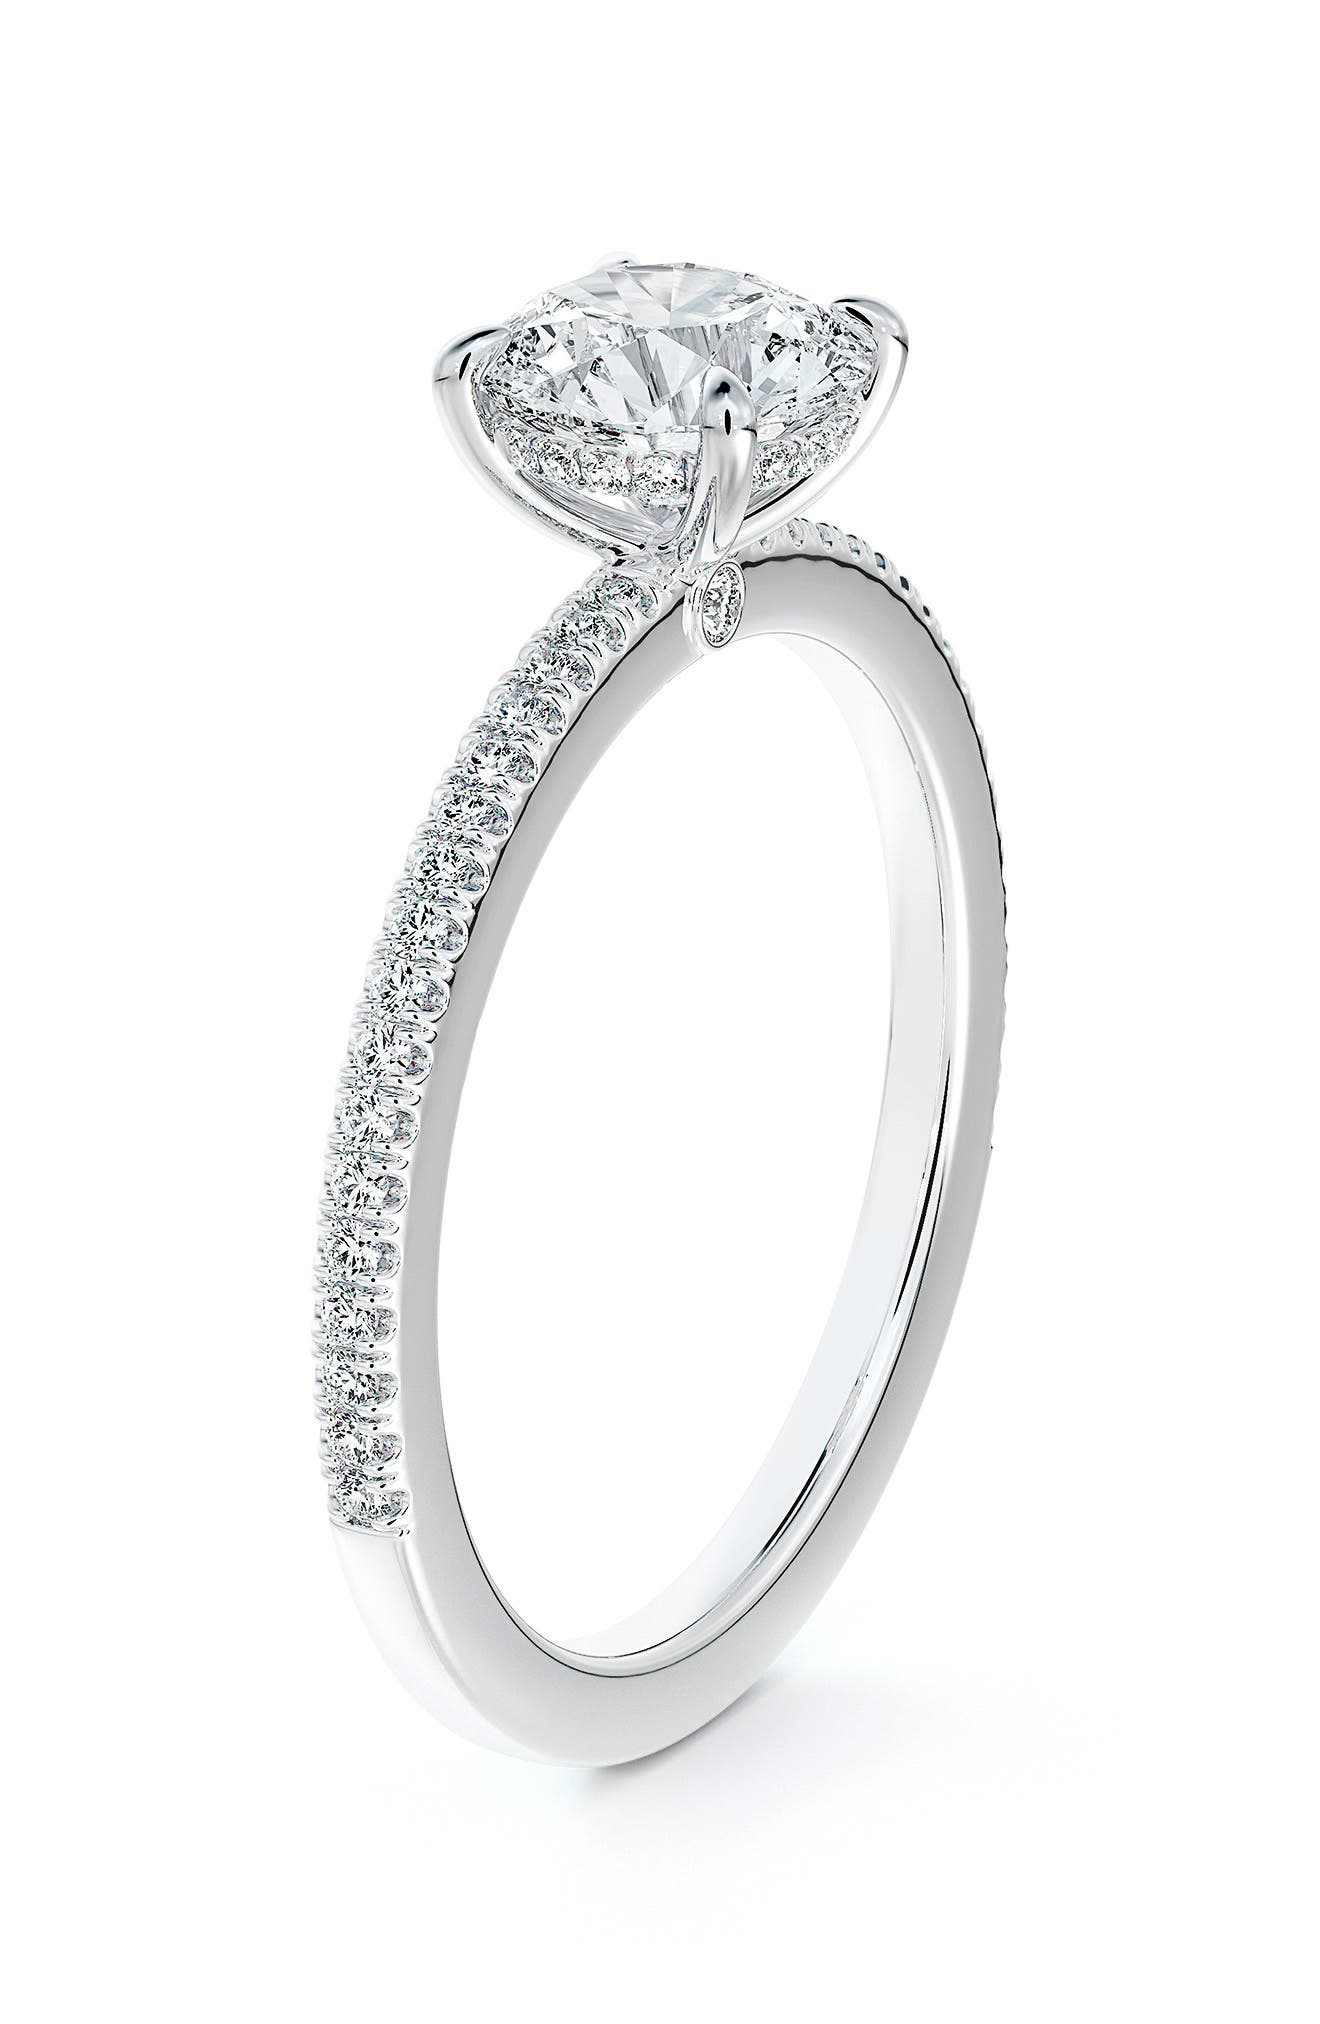 X Micaela Simply Solitaire Round Diamond Engagement Ring With Diamond Band